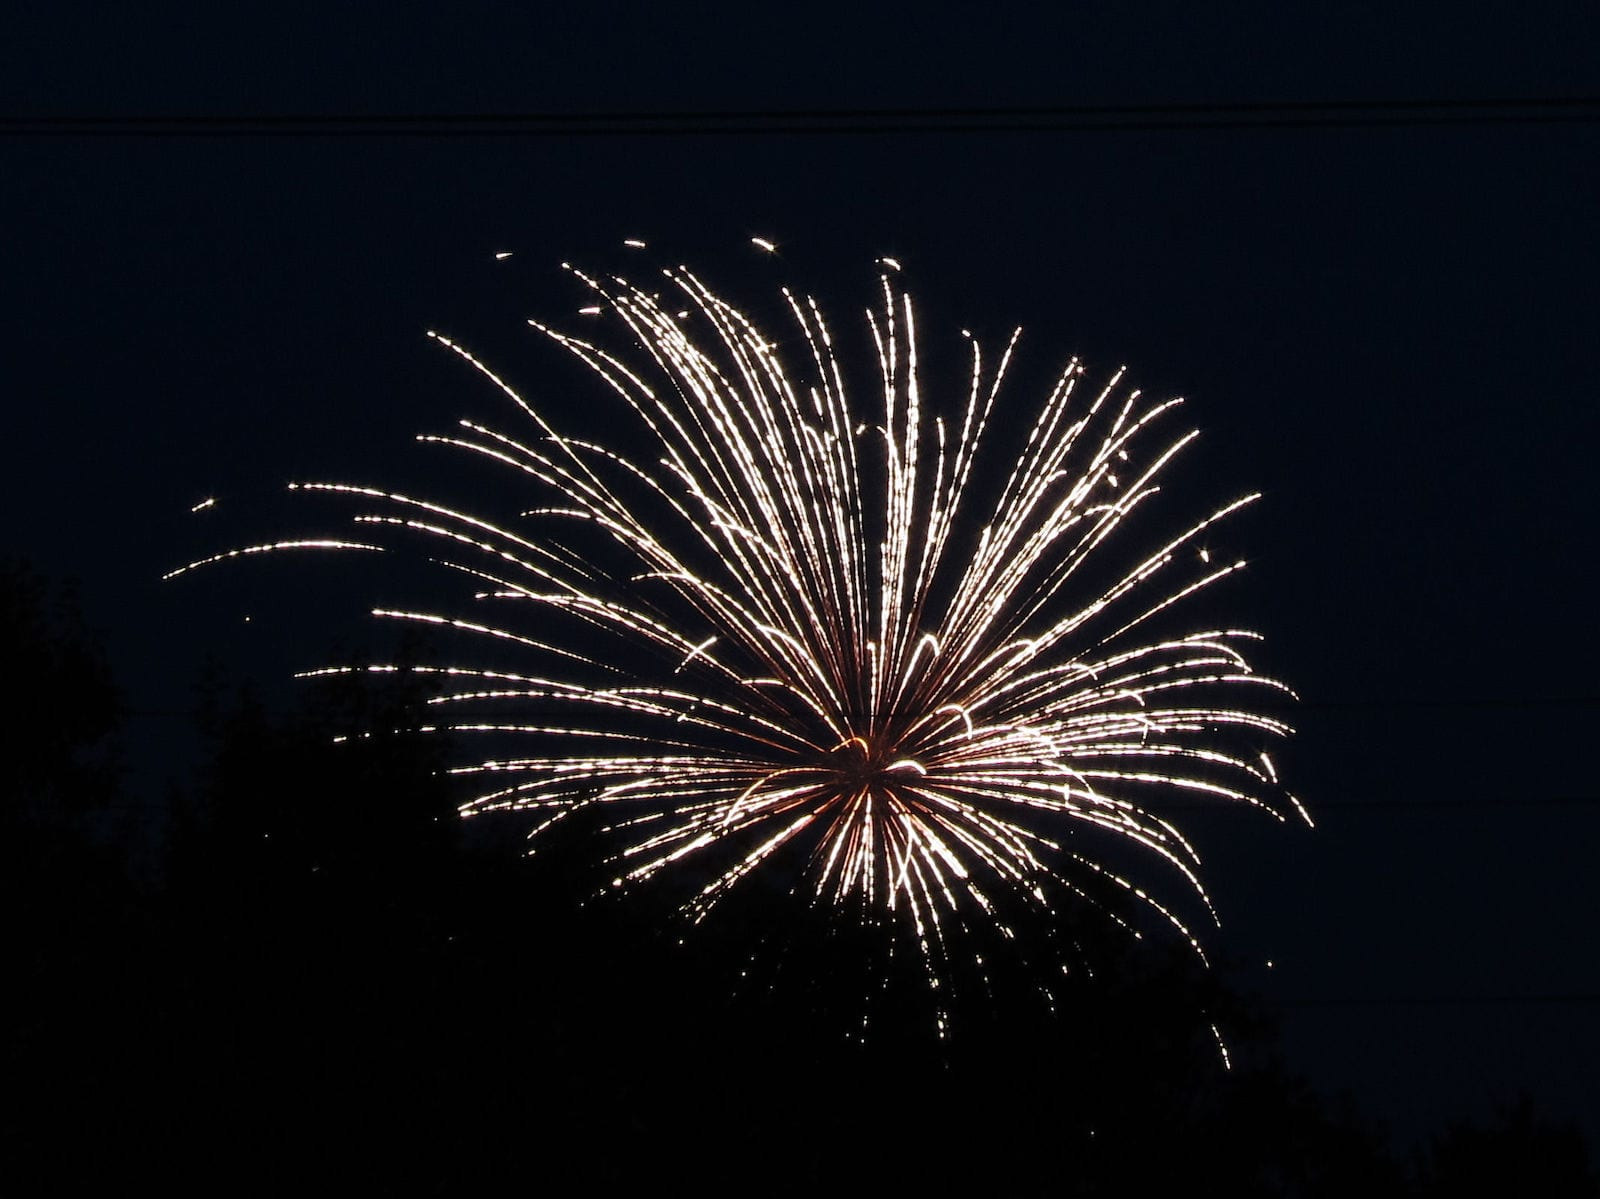 Broadmoor Hotel Fireworks 4th of July Show Colorado Springs